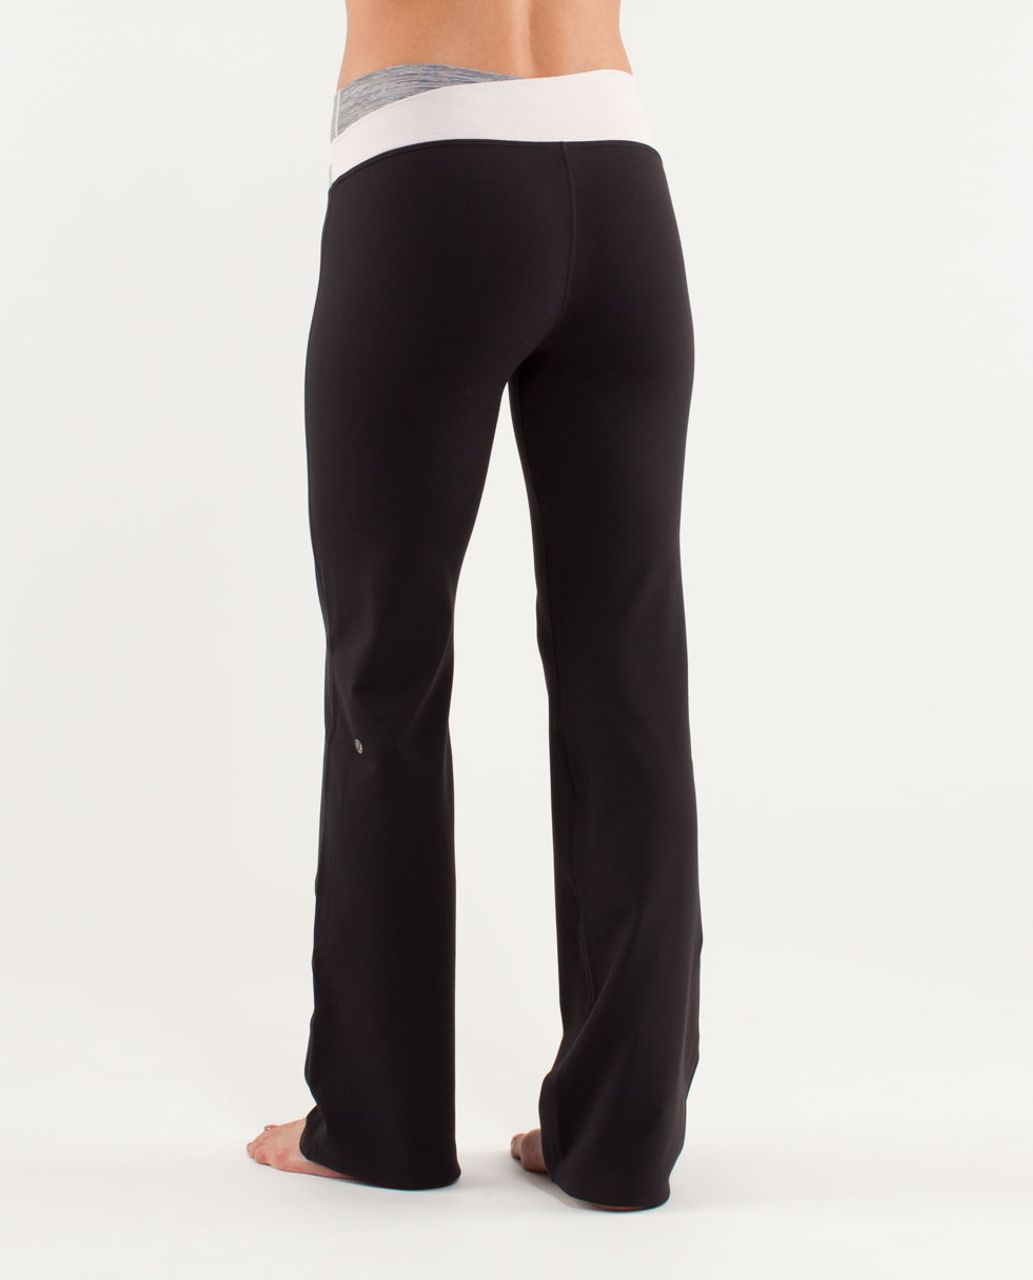 Lululemon Astro Pant (Regular) - Black /  Wee Are From Space Coal Fossil /  Heathered Dune